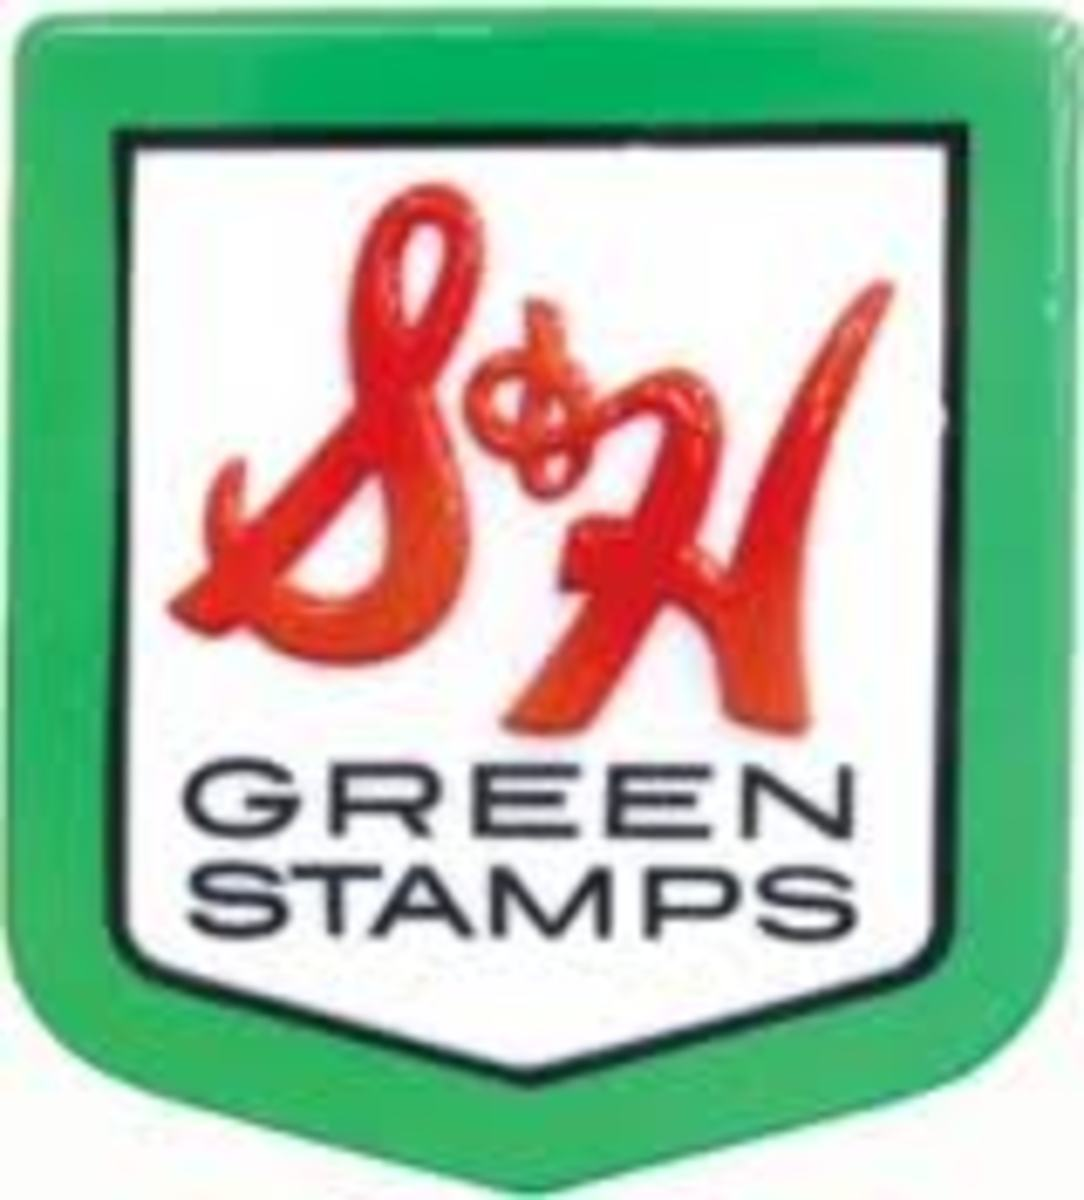 Logo of Sperry & Hutchinson S&H Green Stamps